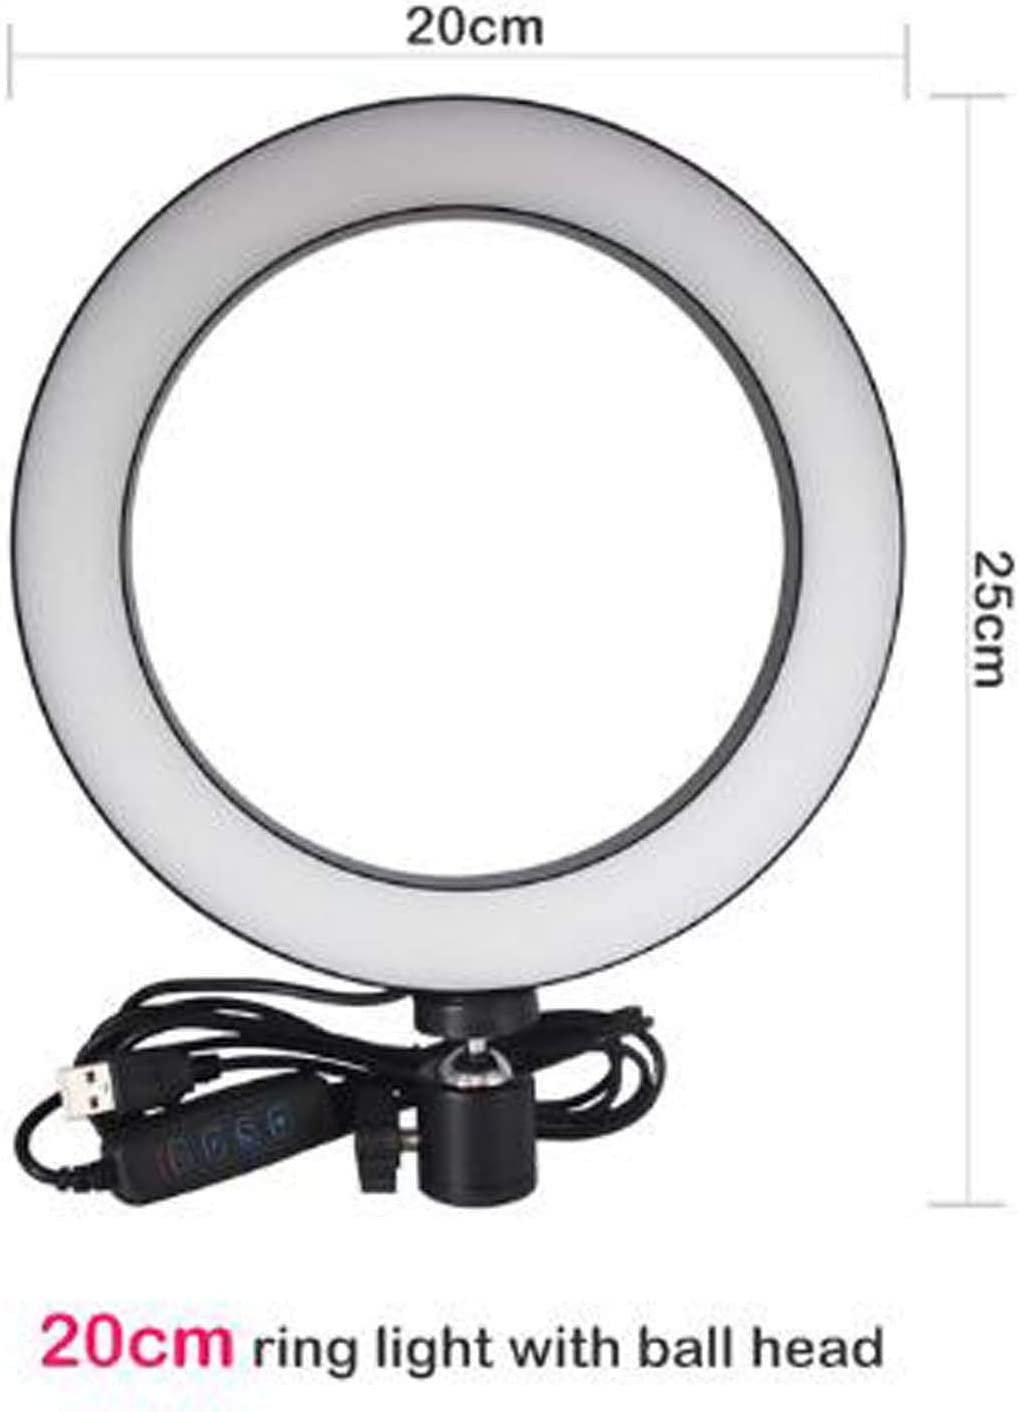 Mini Led Ringlight Camera for YouTube Video Photography,1,B IV-ydzxx 16 Or 20Cm Selfie Ring Light with Tripod and Cell Phone Holder for Live Makeup